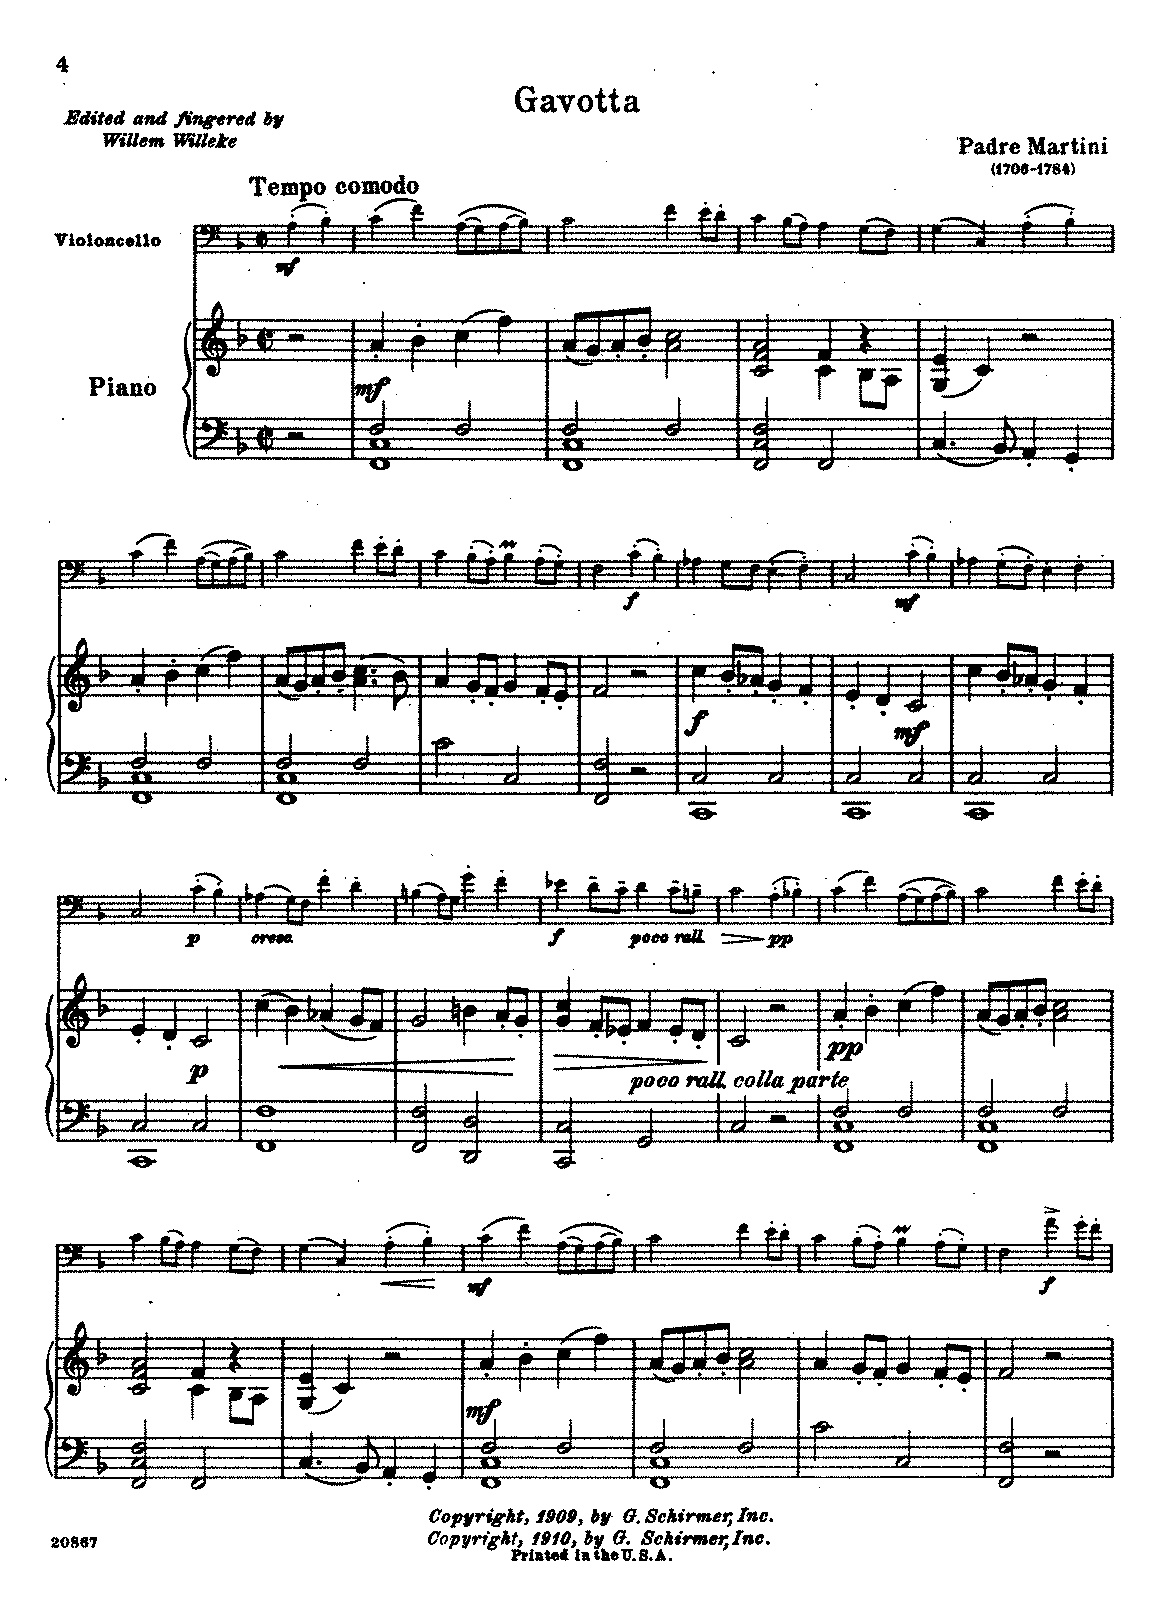 PMLP52386-Martini - Gavotta (Willeke) for cello and piano.pdf